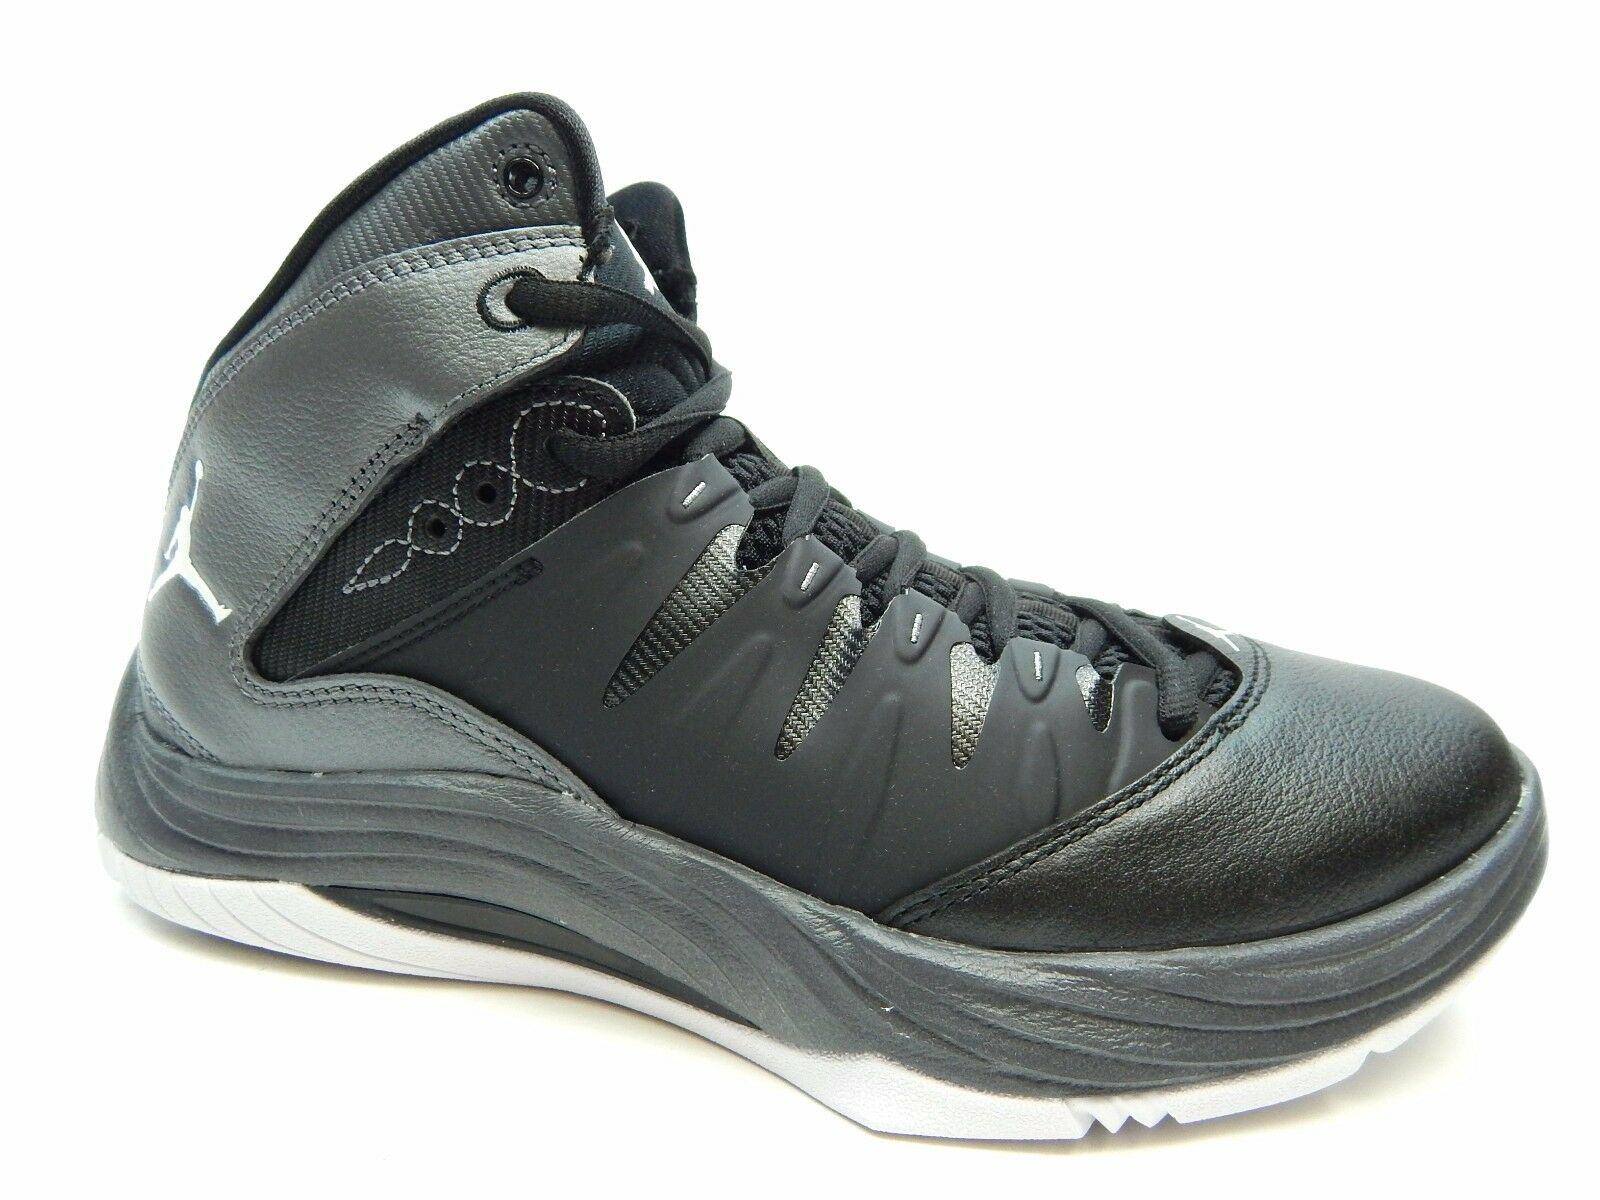 JORDAN PRIME.FLY BLACK WHITE DARK GREY MEN SHOES SIZE 7, 7.5 & 13.5 New shoes for men and women, limited time discount